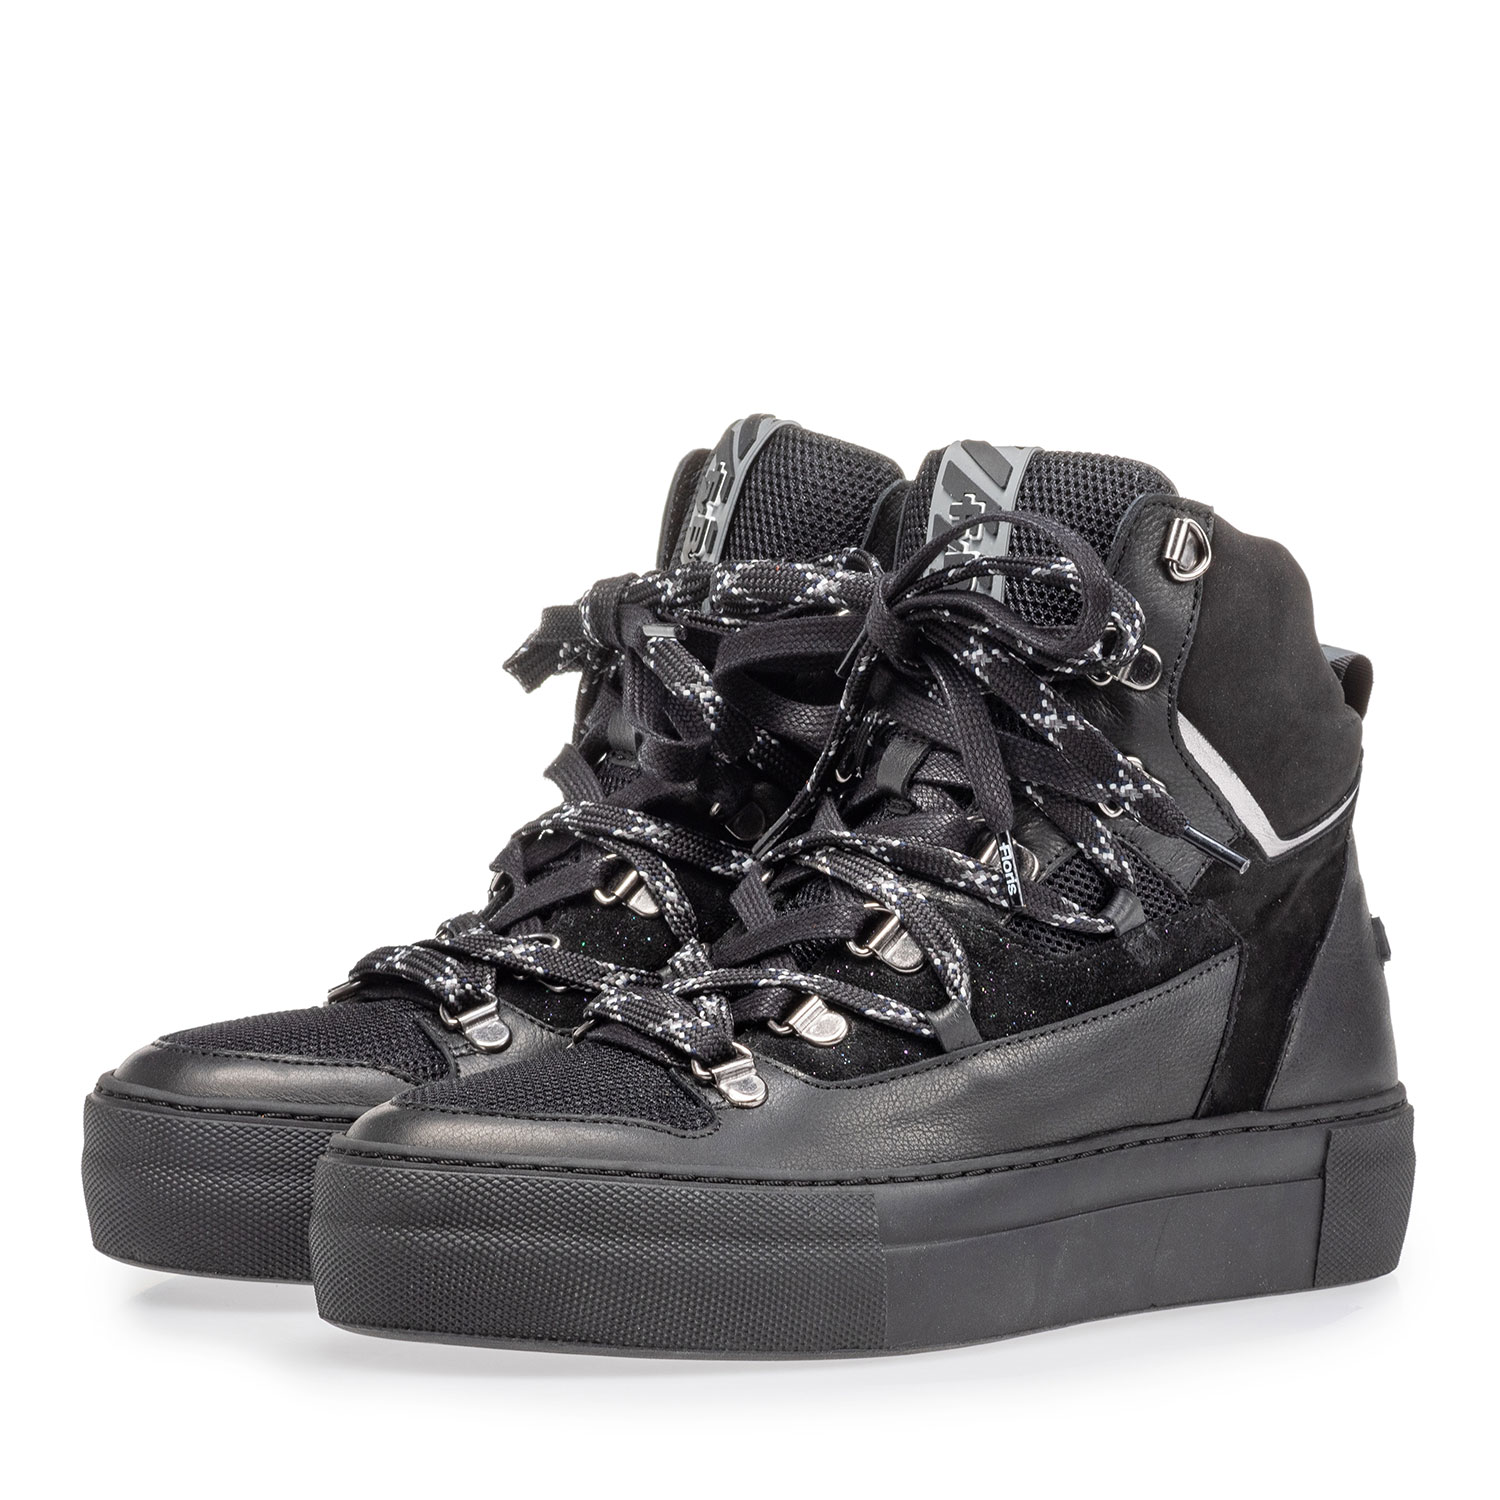 85315/00 - Mid-high sneaker black leather